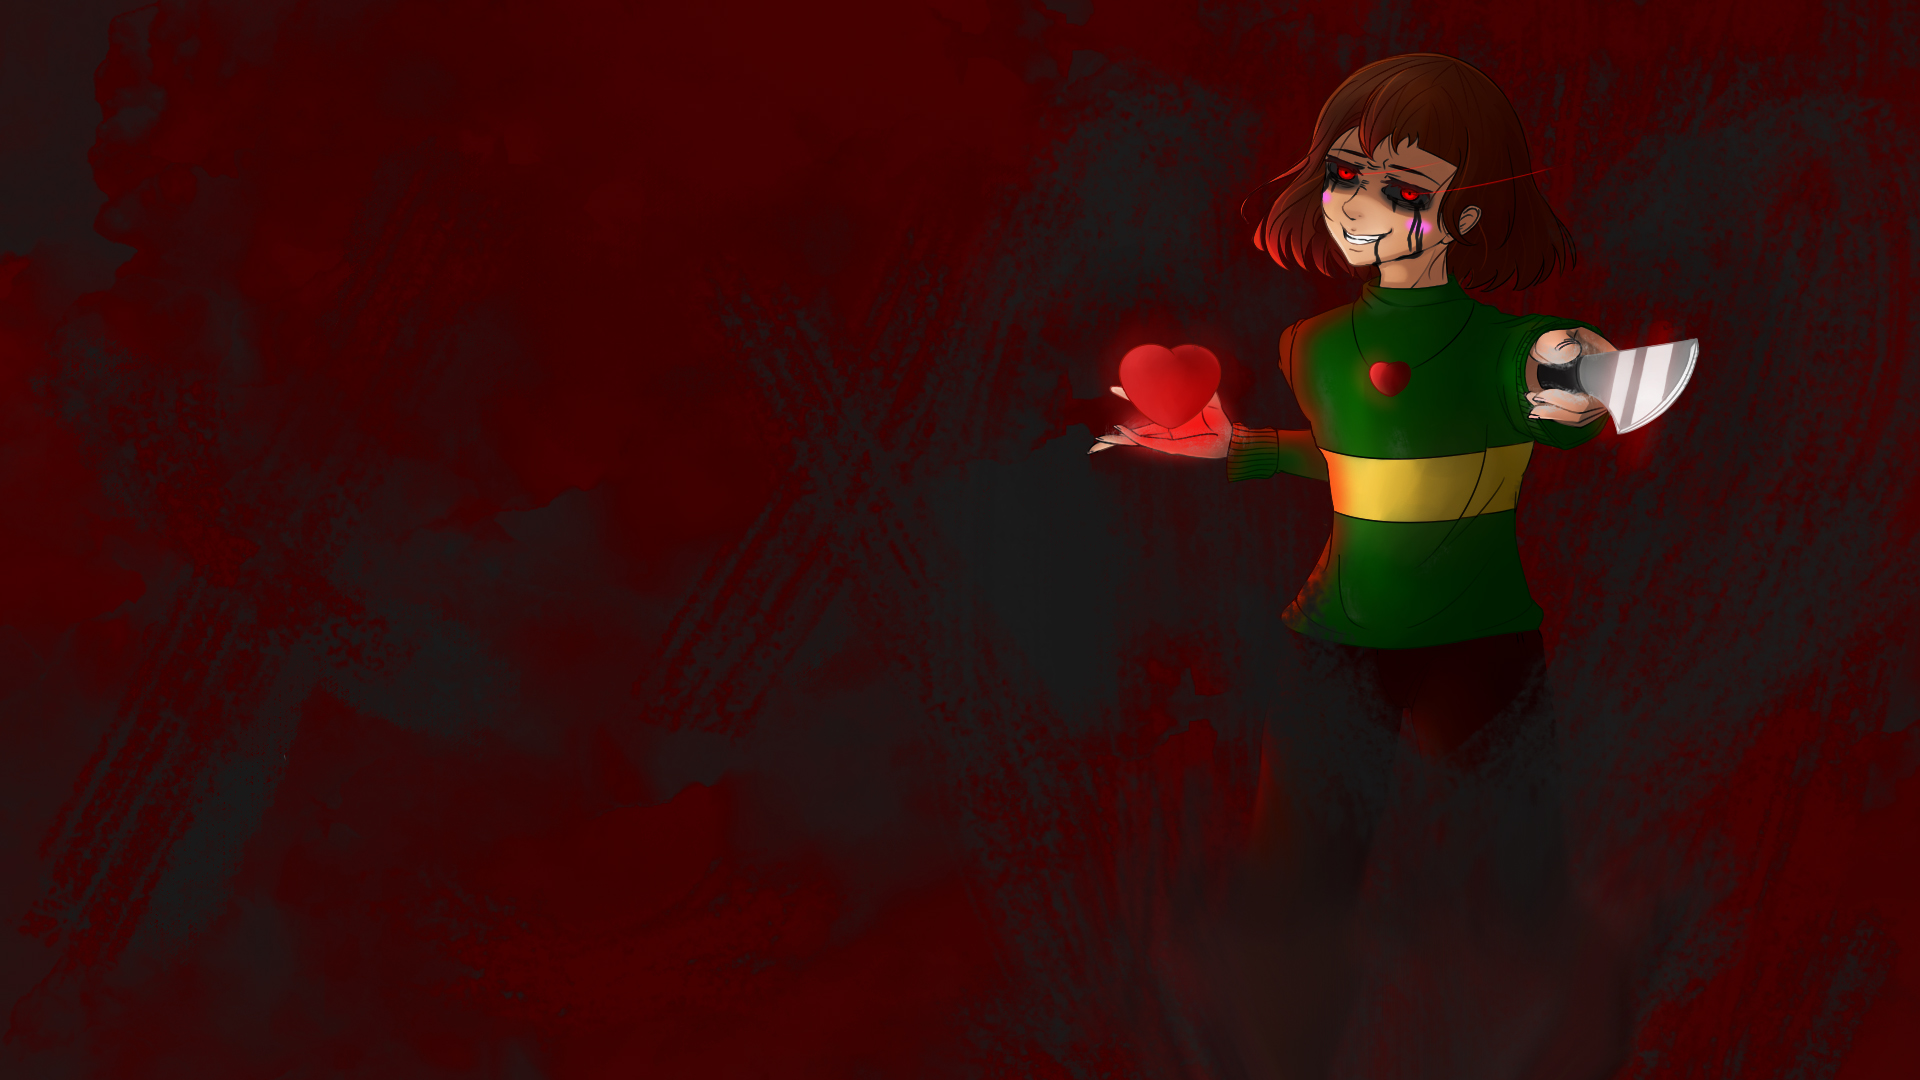 Chara The World Is Ending Undertale Wallpaper By Digitalcoldi